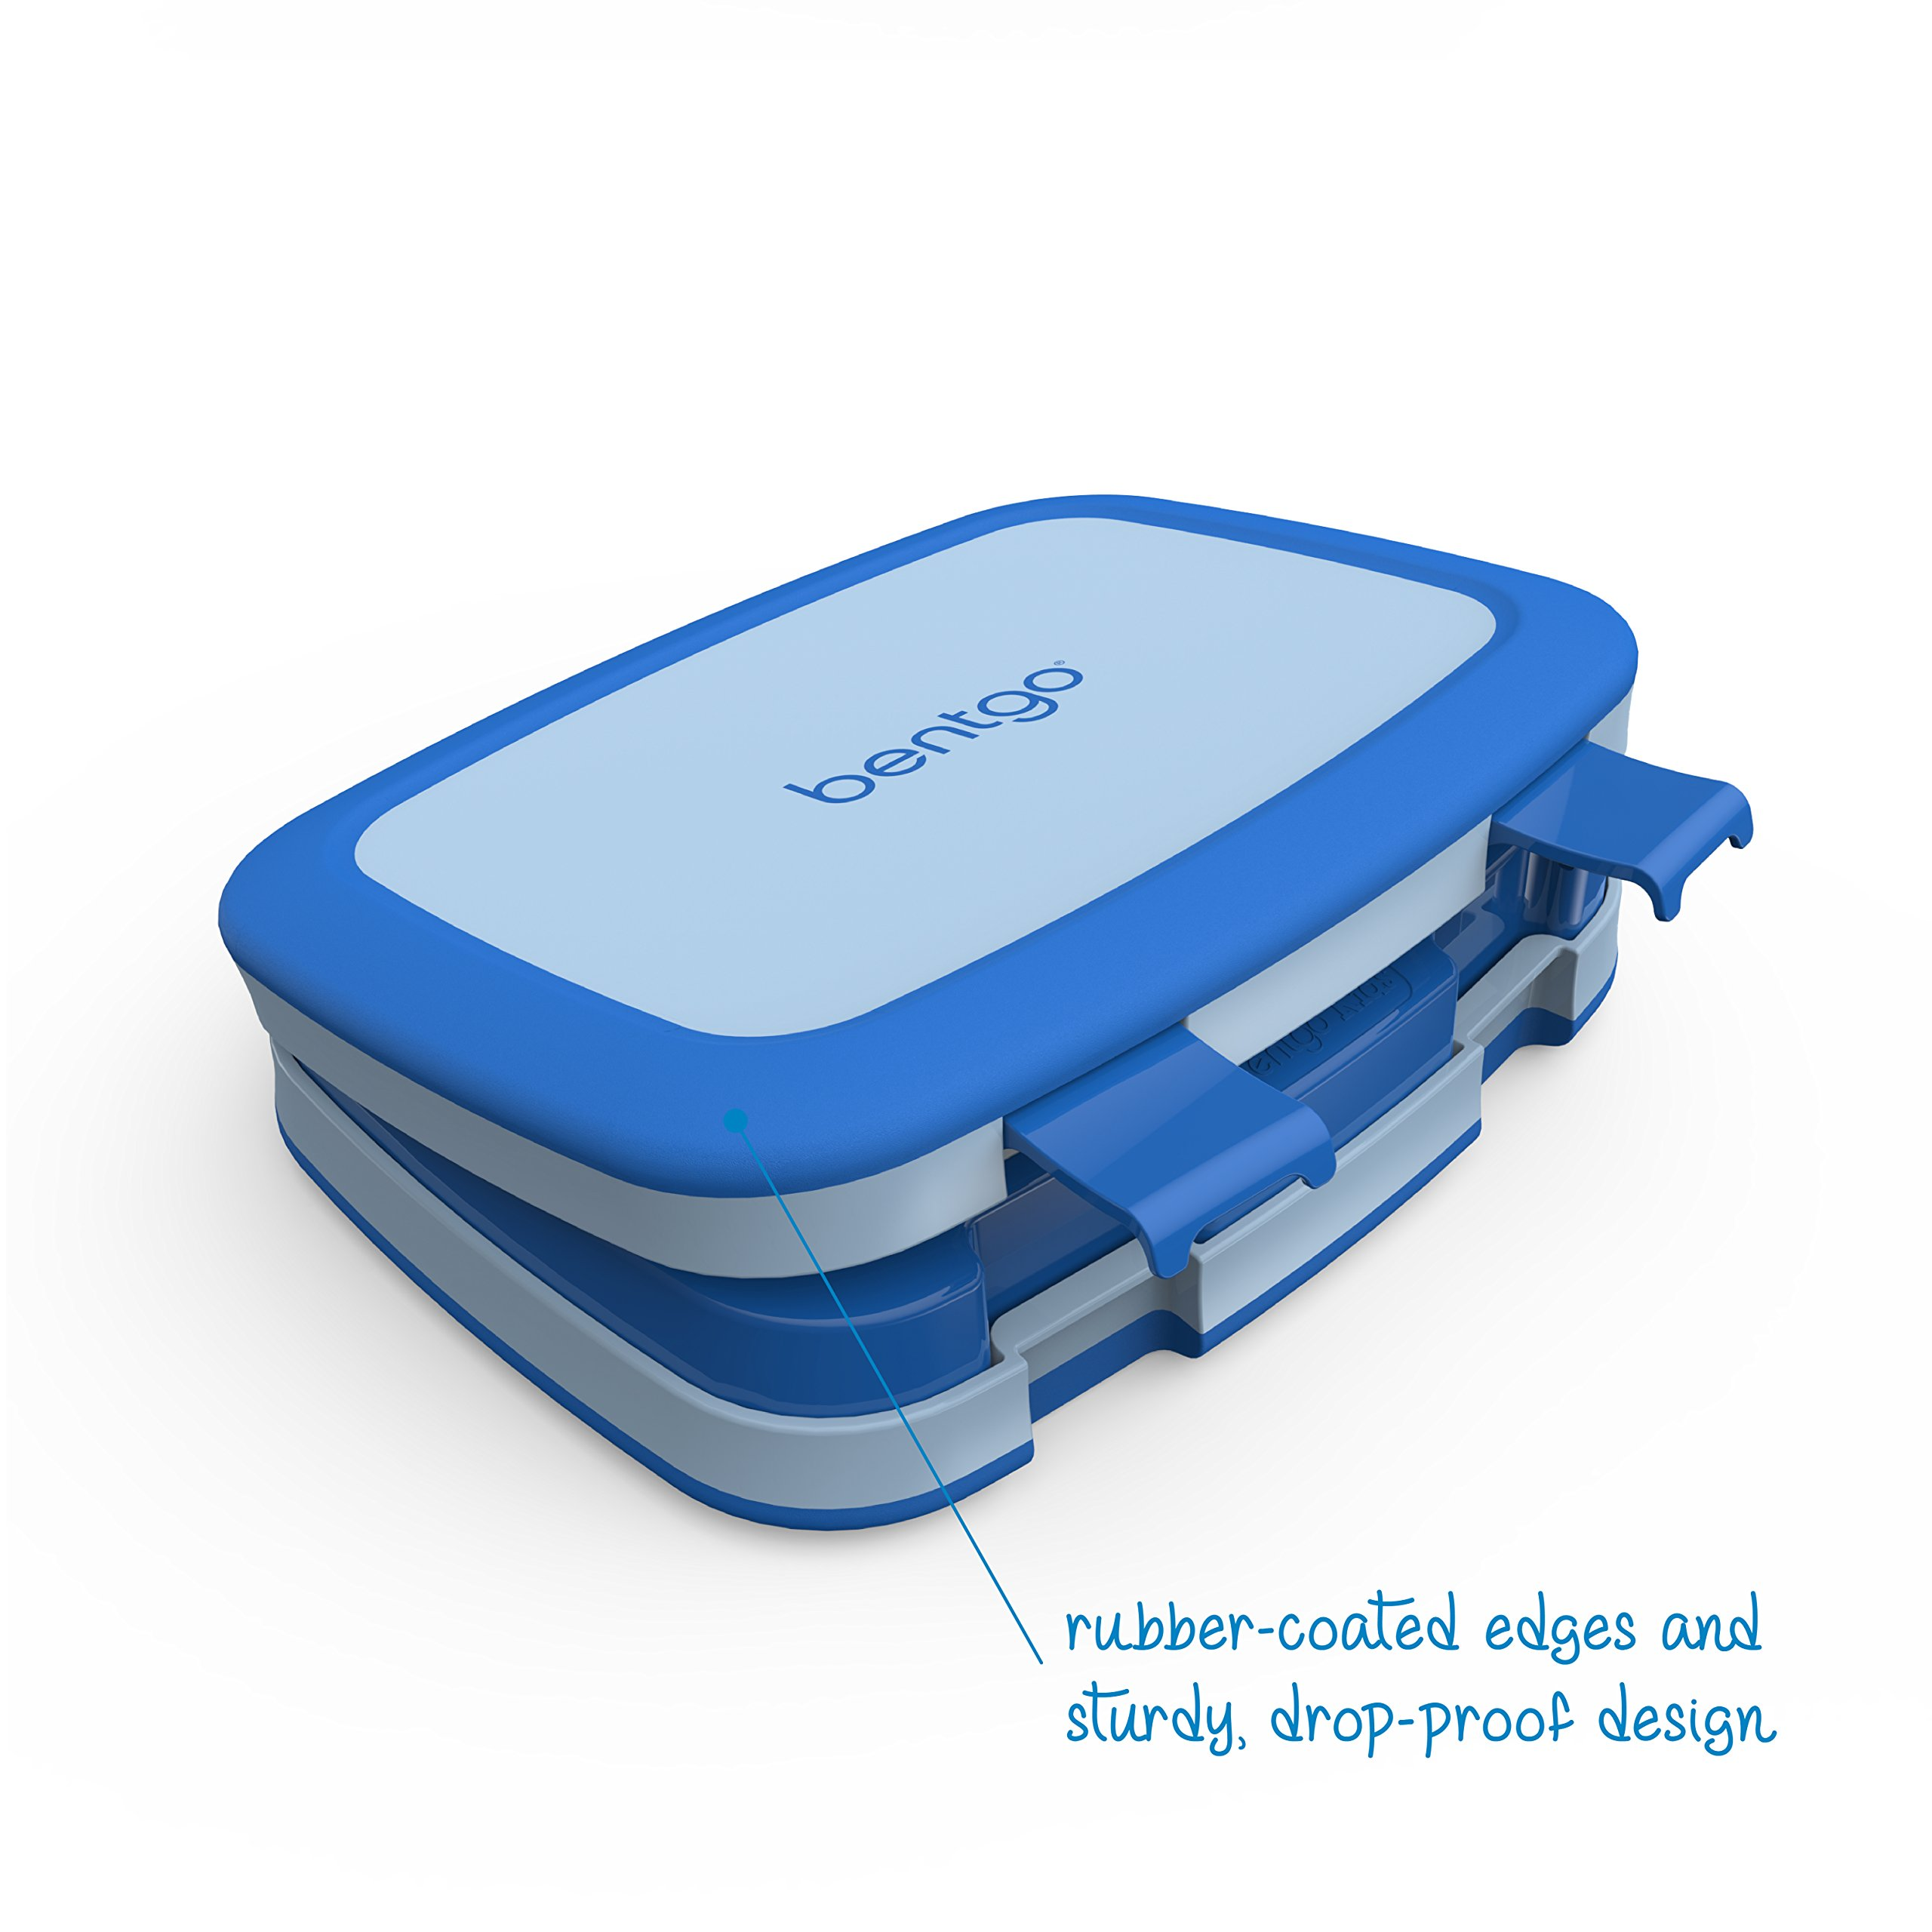 Bentgo Kids Childrens Lunch Box - Bento-Styled Lunch Solution Offers Durable, Leak-Proof, On-the-Go Meal and Snack Packing by Bentgo (Image #3)